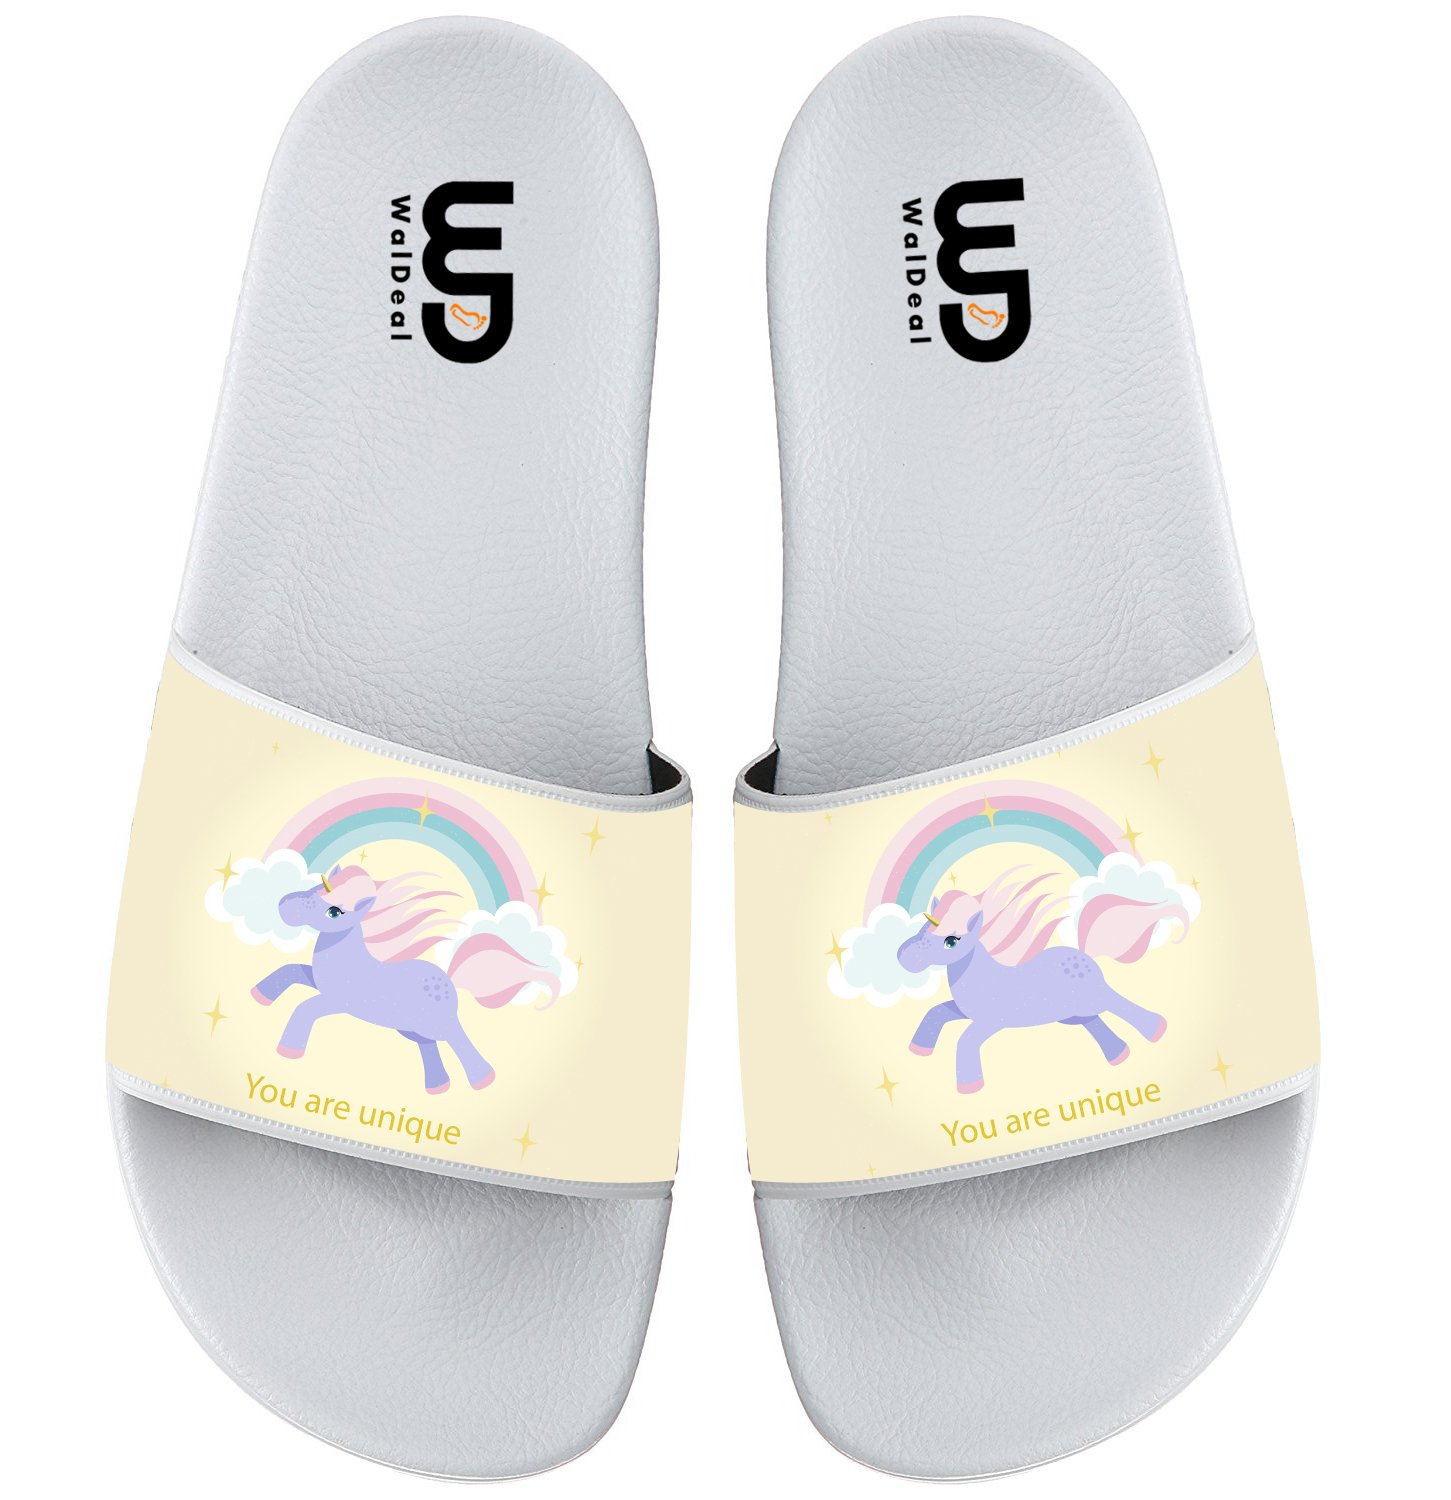 Unicorn With Rainbows And Clouds Summer Non-slip Slide Sandals Home Shoes Beach Swim Flip Flops Indoor and Outdoor Slipper Women Men B0753C1ZJJ 13 B(M) US|White